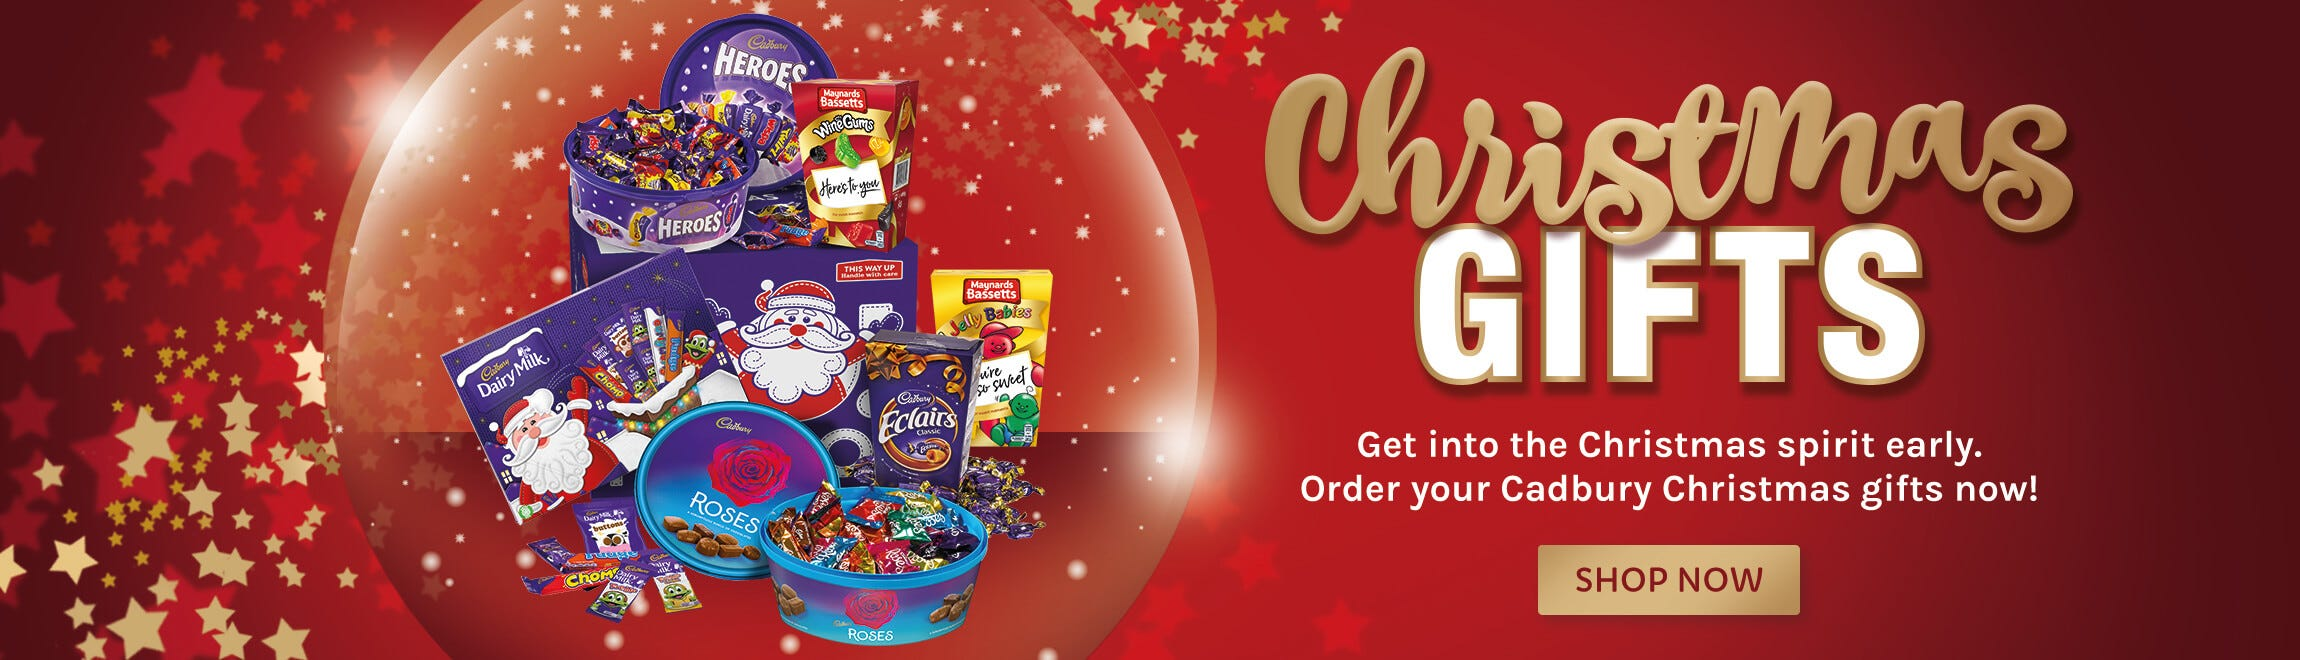 Cadbury Christmas Gifts & Hampers